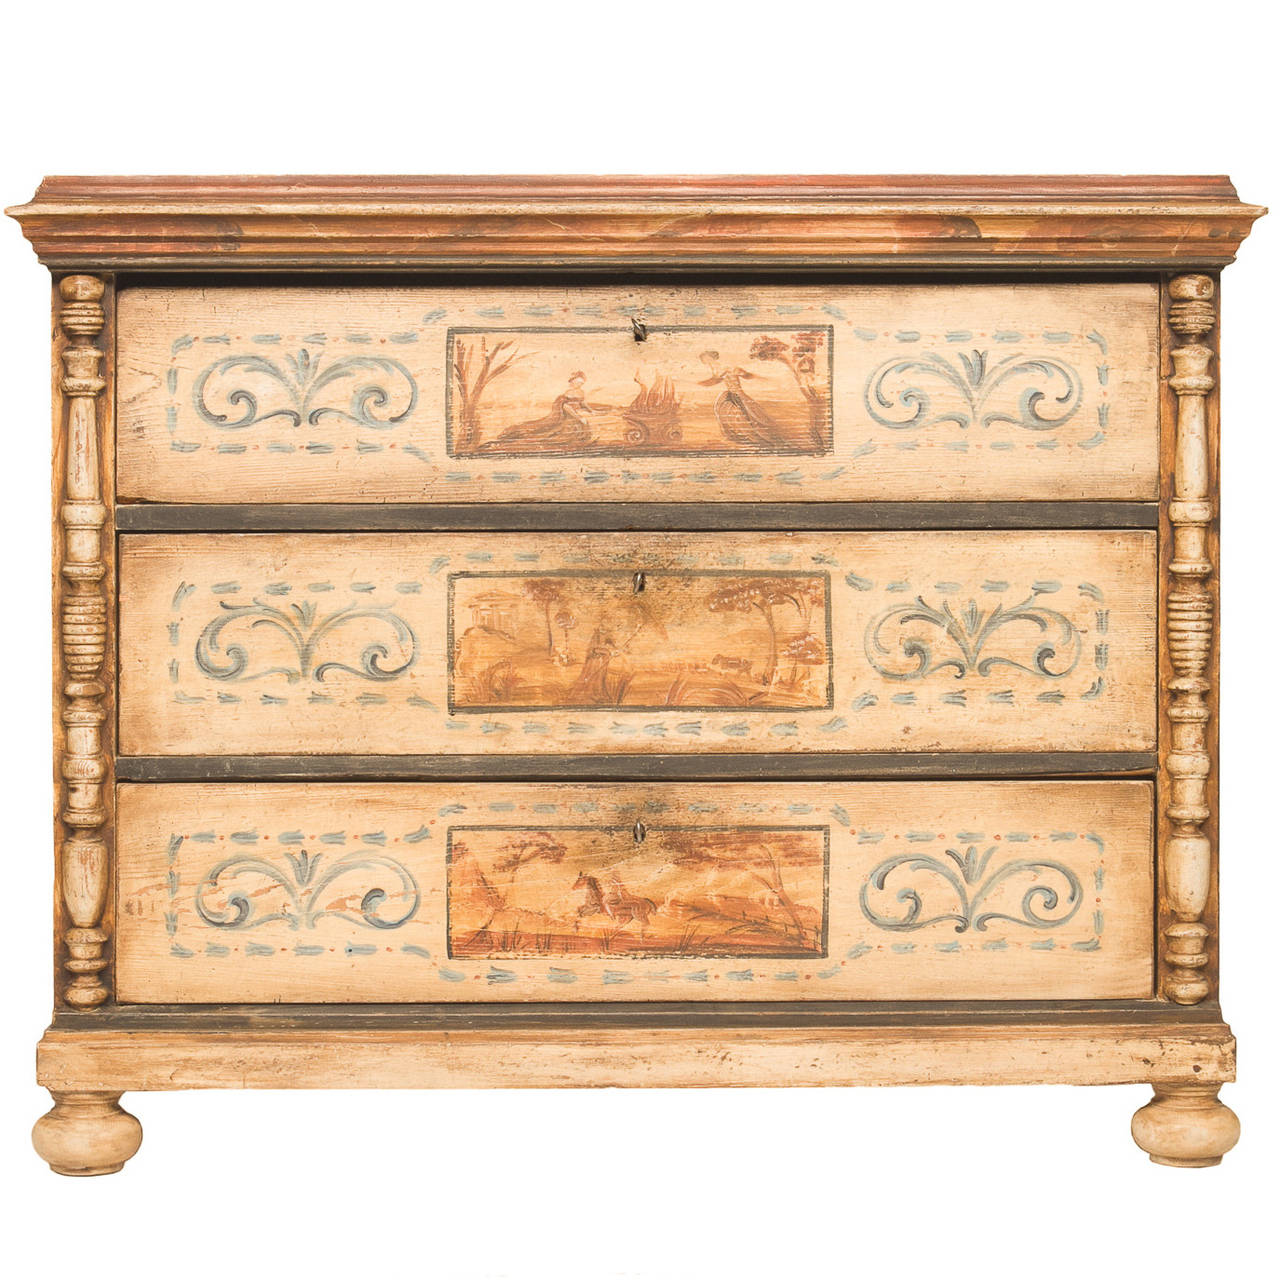 18th Century Painted Commode from Europe